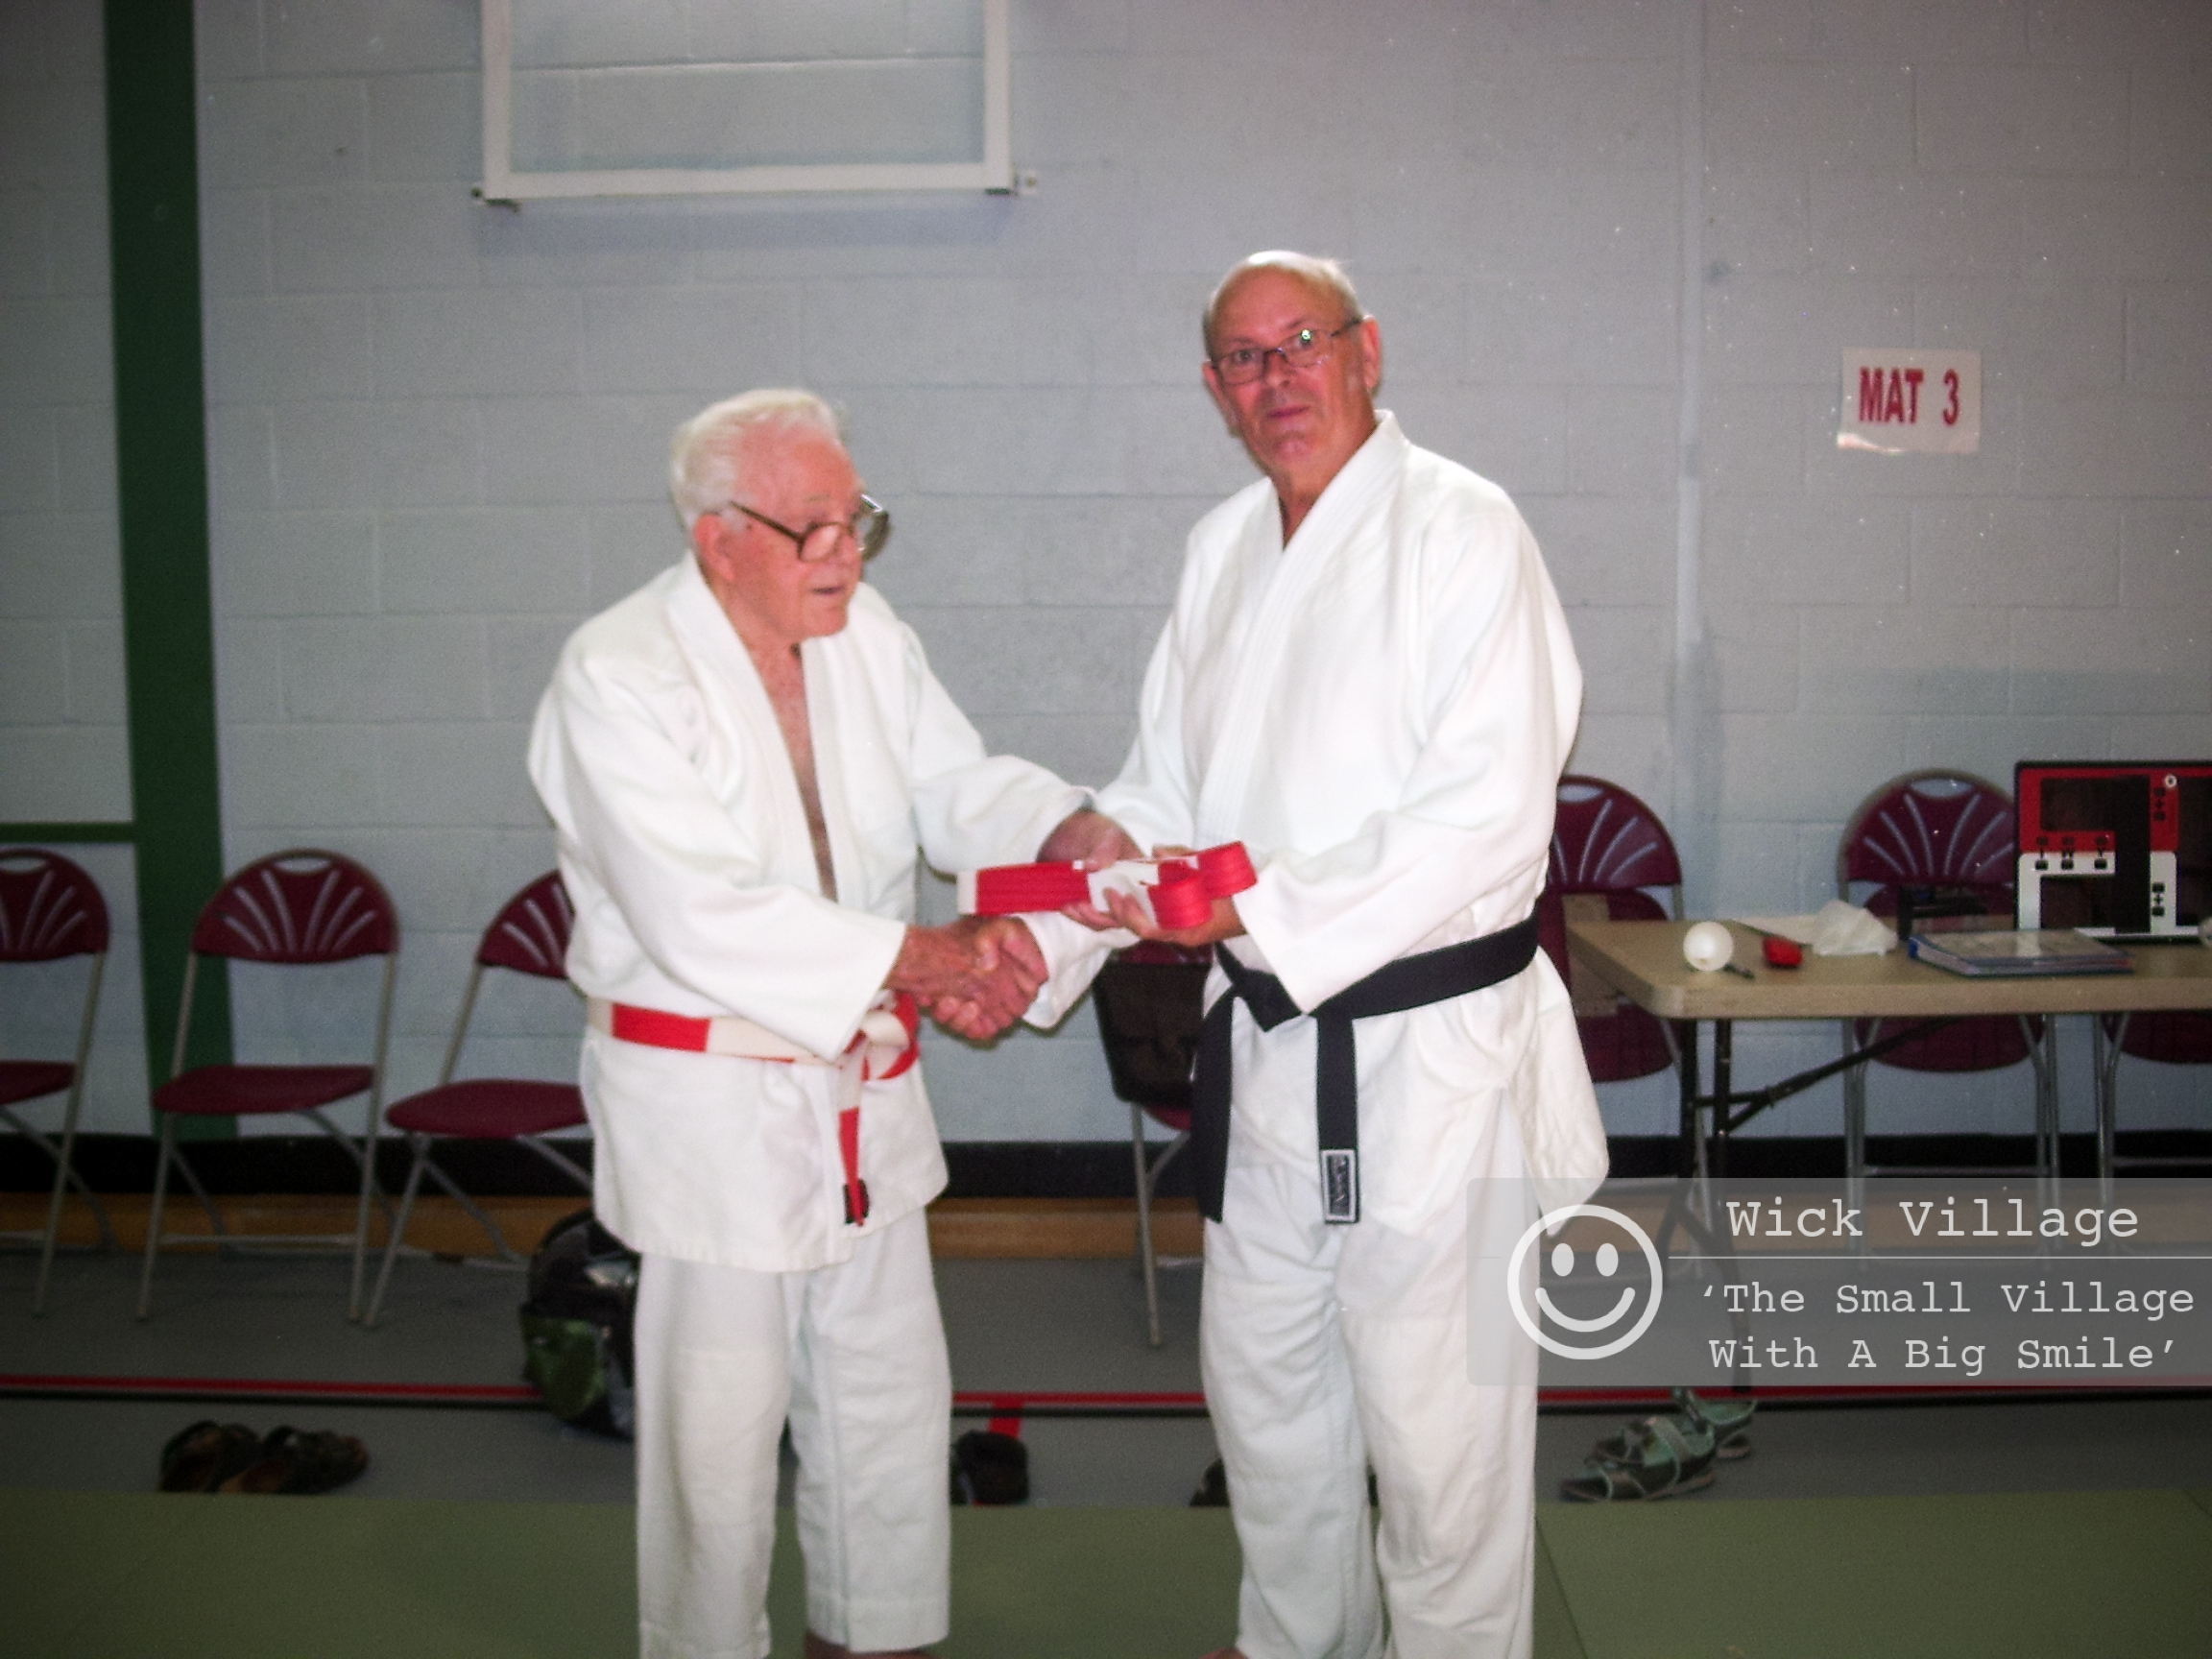 Don Ellis instructor of the Judokan Judo Club in Wick Village is awarded his red & white belt (6th dan). Presented to him by Mr Mealing (8th dan & vice president of the BJC), Don received the award at a British Judo Club course held in Oxford.